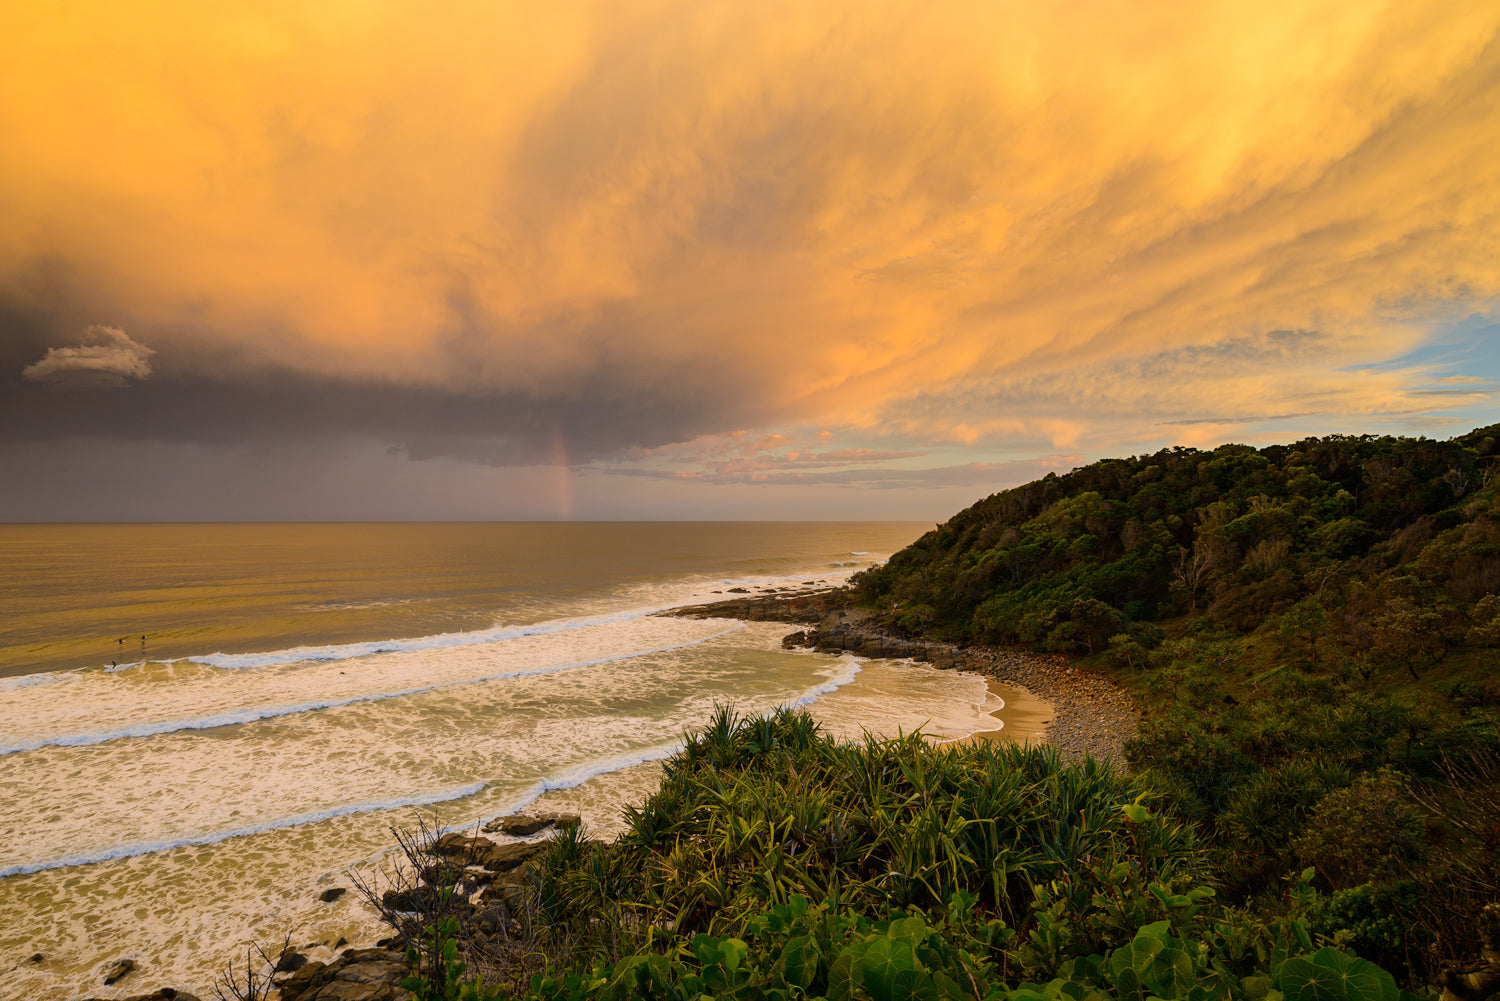 After the storm -Coolum Beach